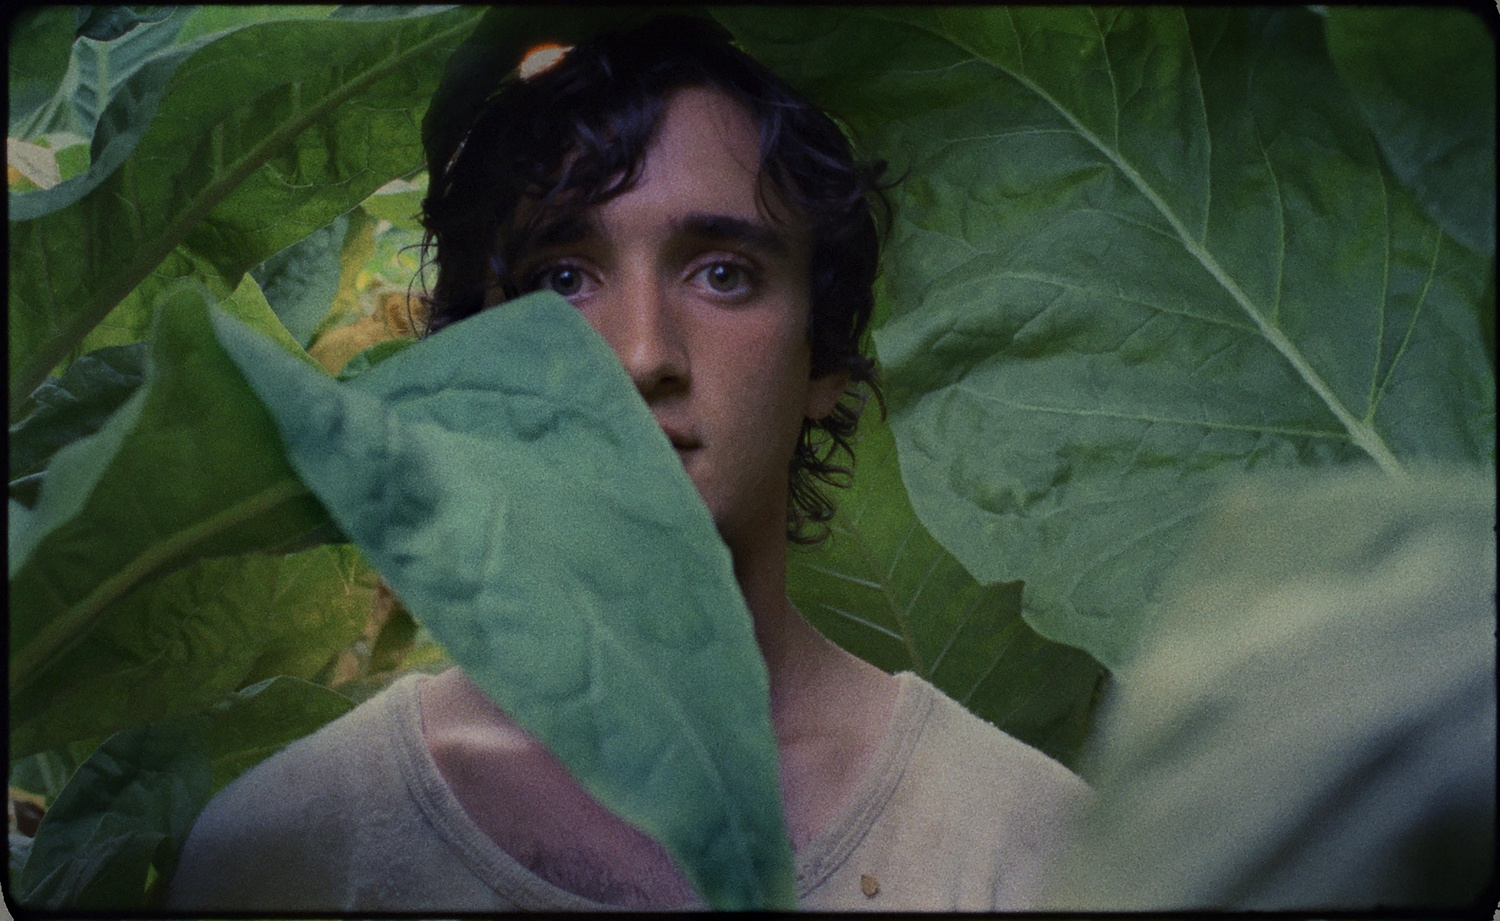 """Adriano Tardiolo stars in """"Lazzaro Felice,"""" directed by Alice Rohrwacher, which premiered at the Cannes Film Festival, 2018."""